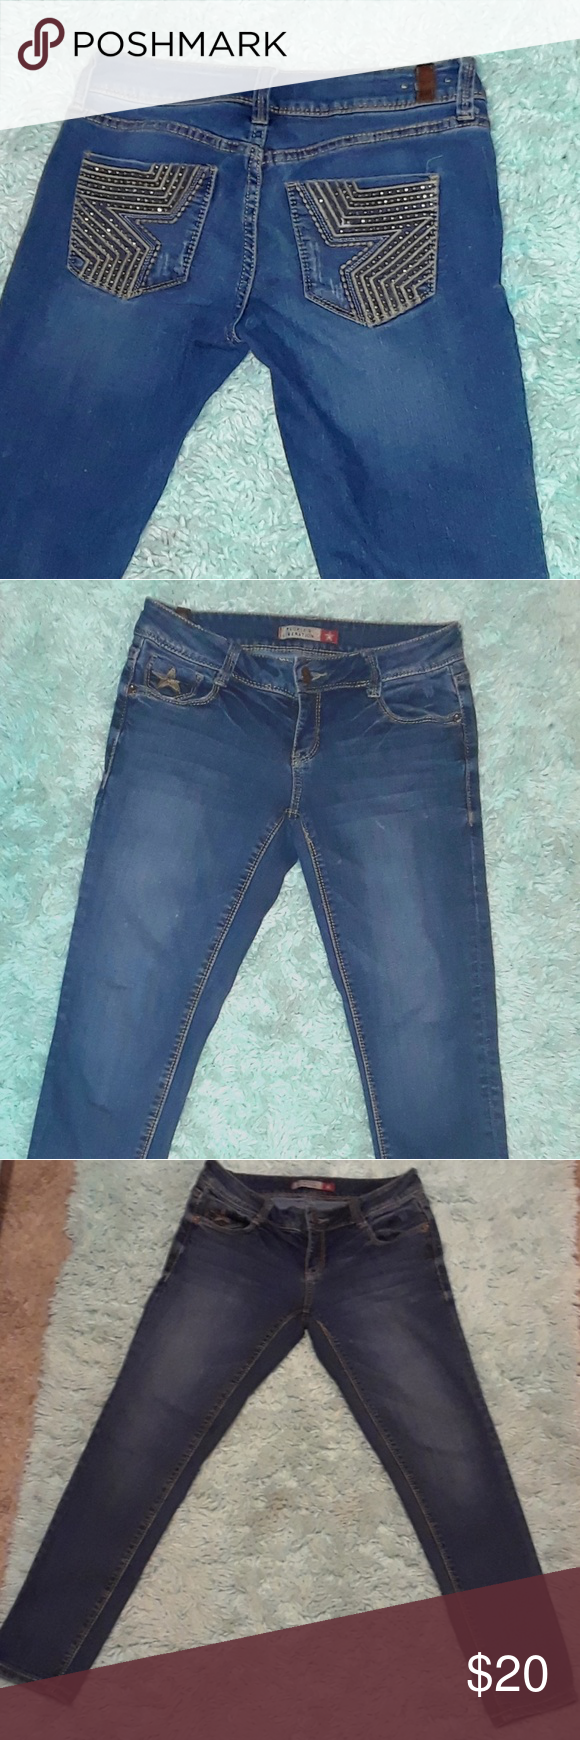 7f6659e6bc9fce ... Jeans Pair of blue Capri People's Liberation jeans just in time for  spring! Size 3/4 but fits like a size 5/6. People's Liberation Jeans Ankle  & Cropped